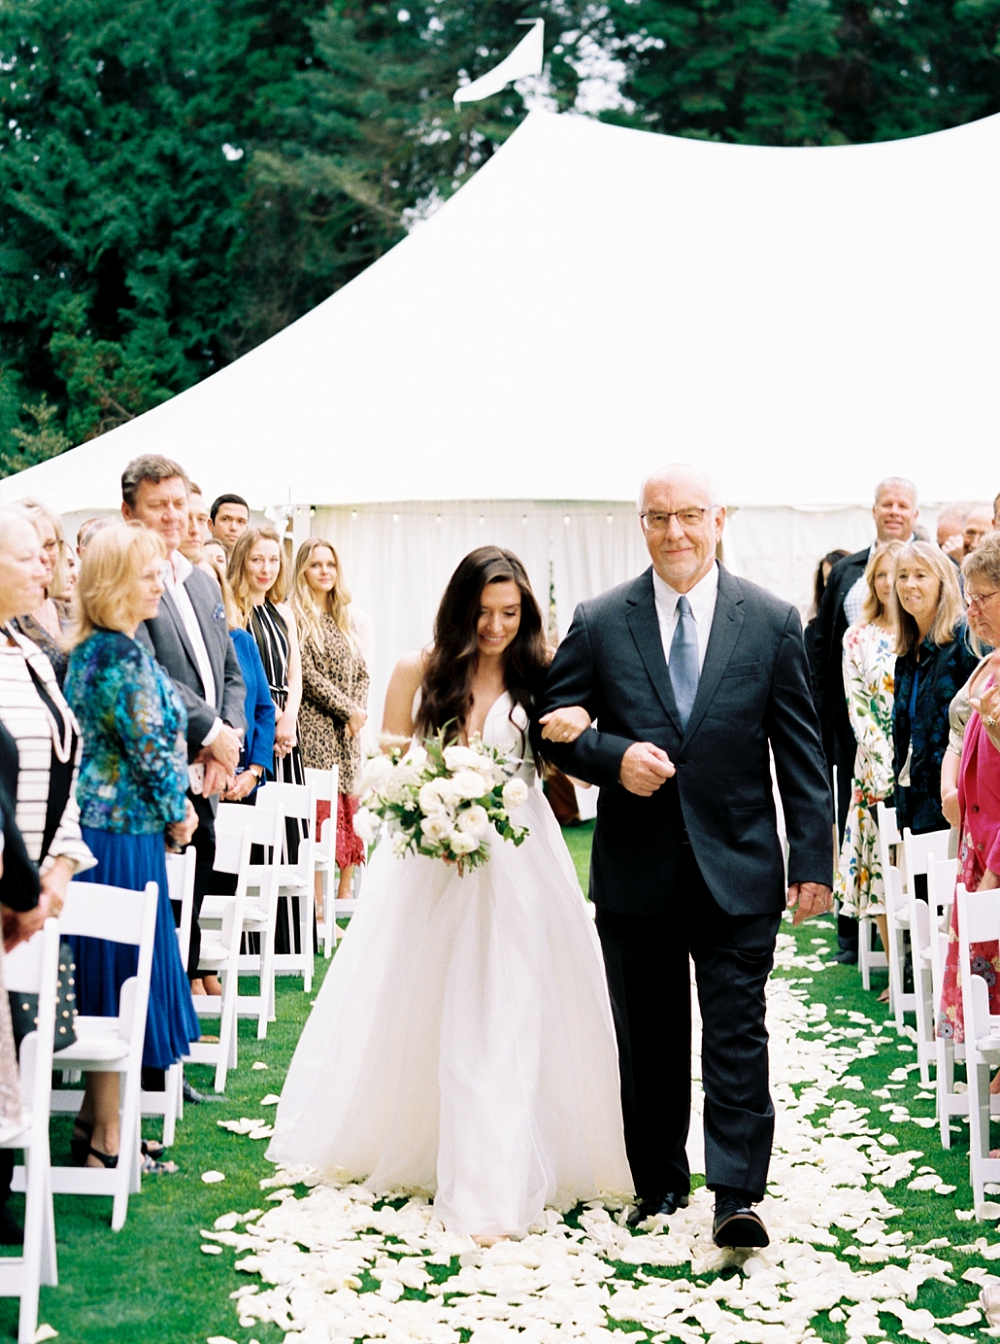 Bride walking down the aisle with her father, sail cloth tent in the background, white rose petals on the ground